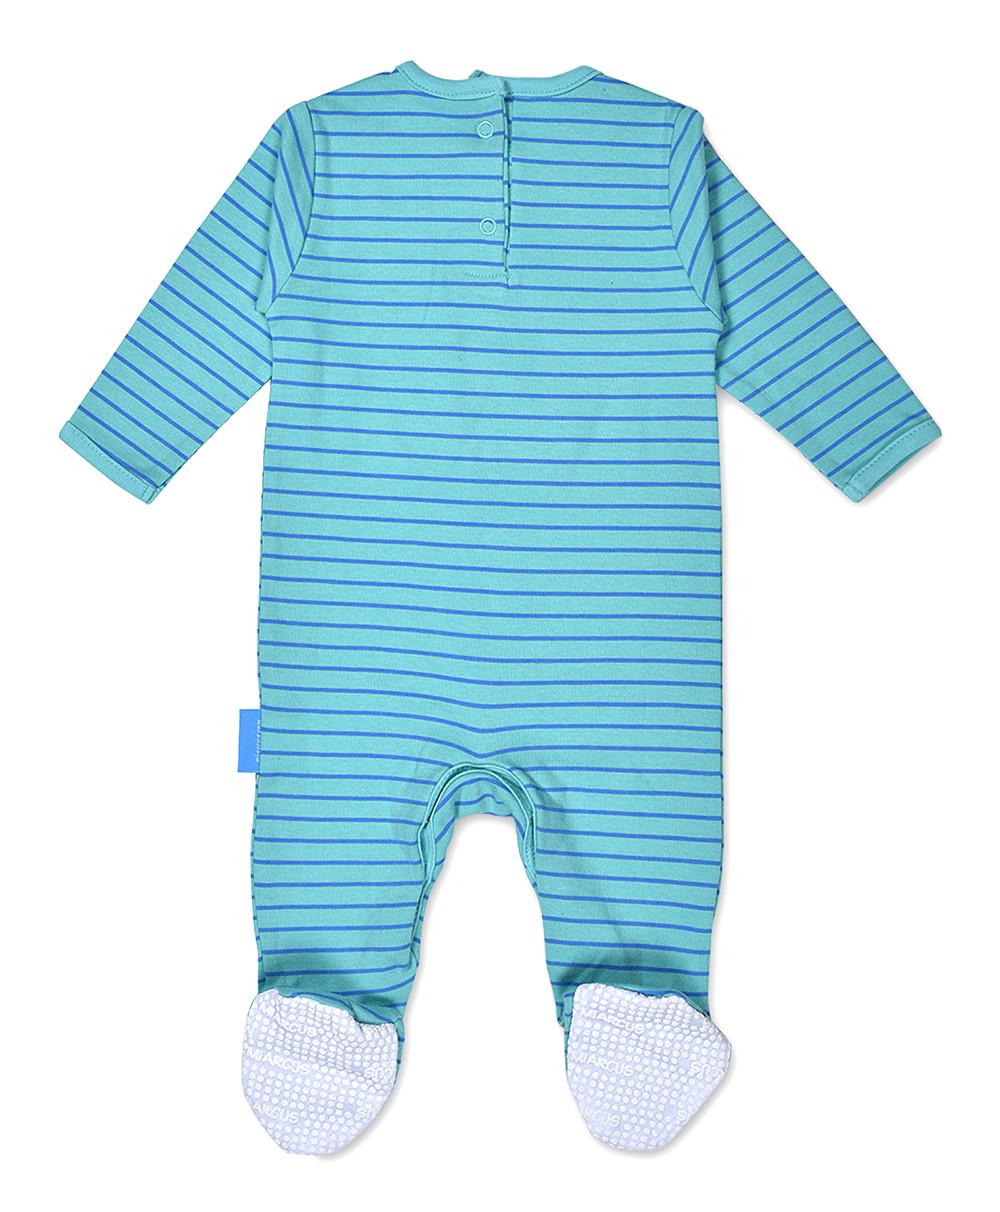 Comfy Knitted Sleep Suit - Safari (Pack of 2)